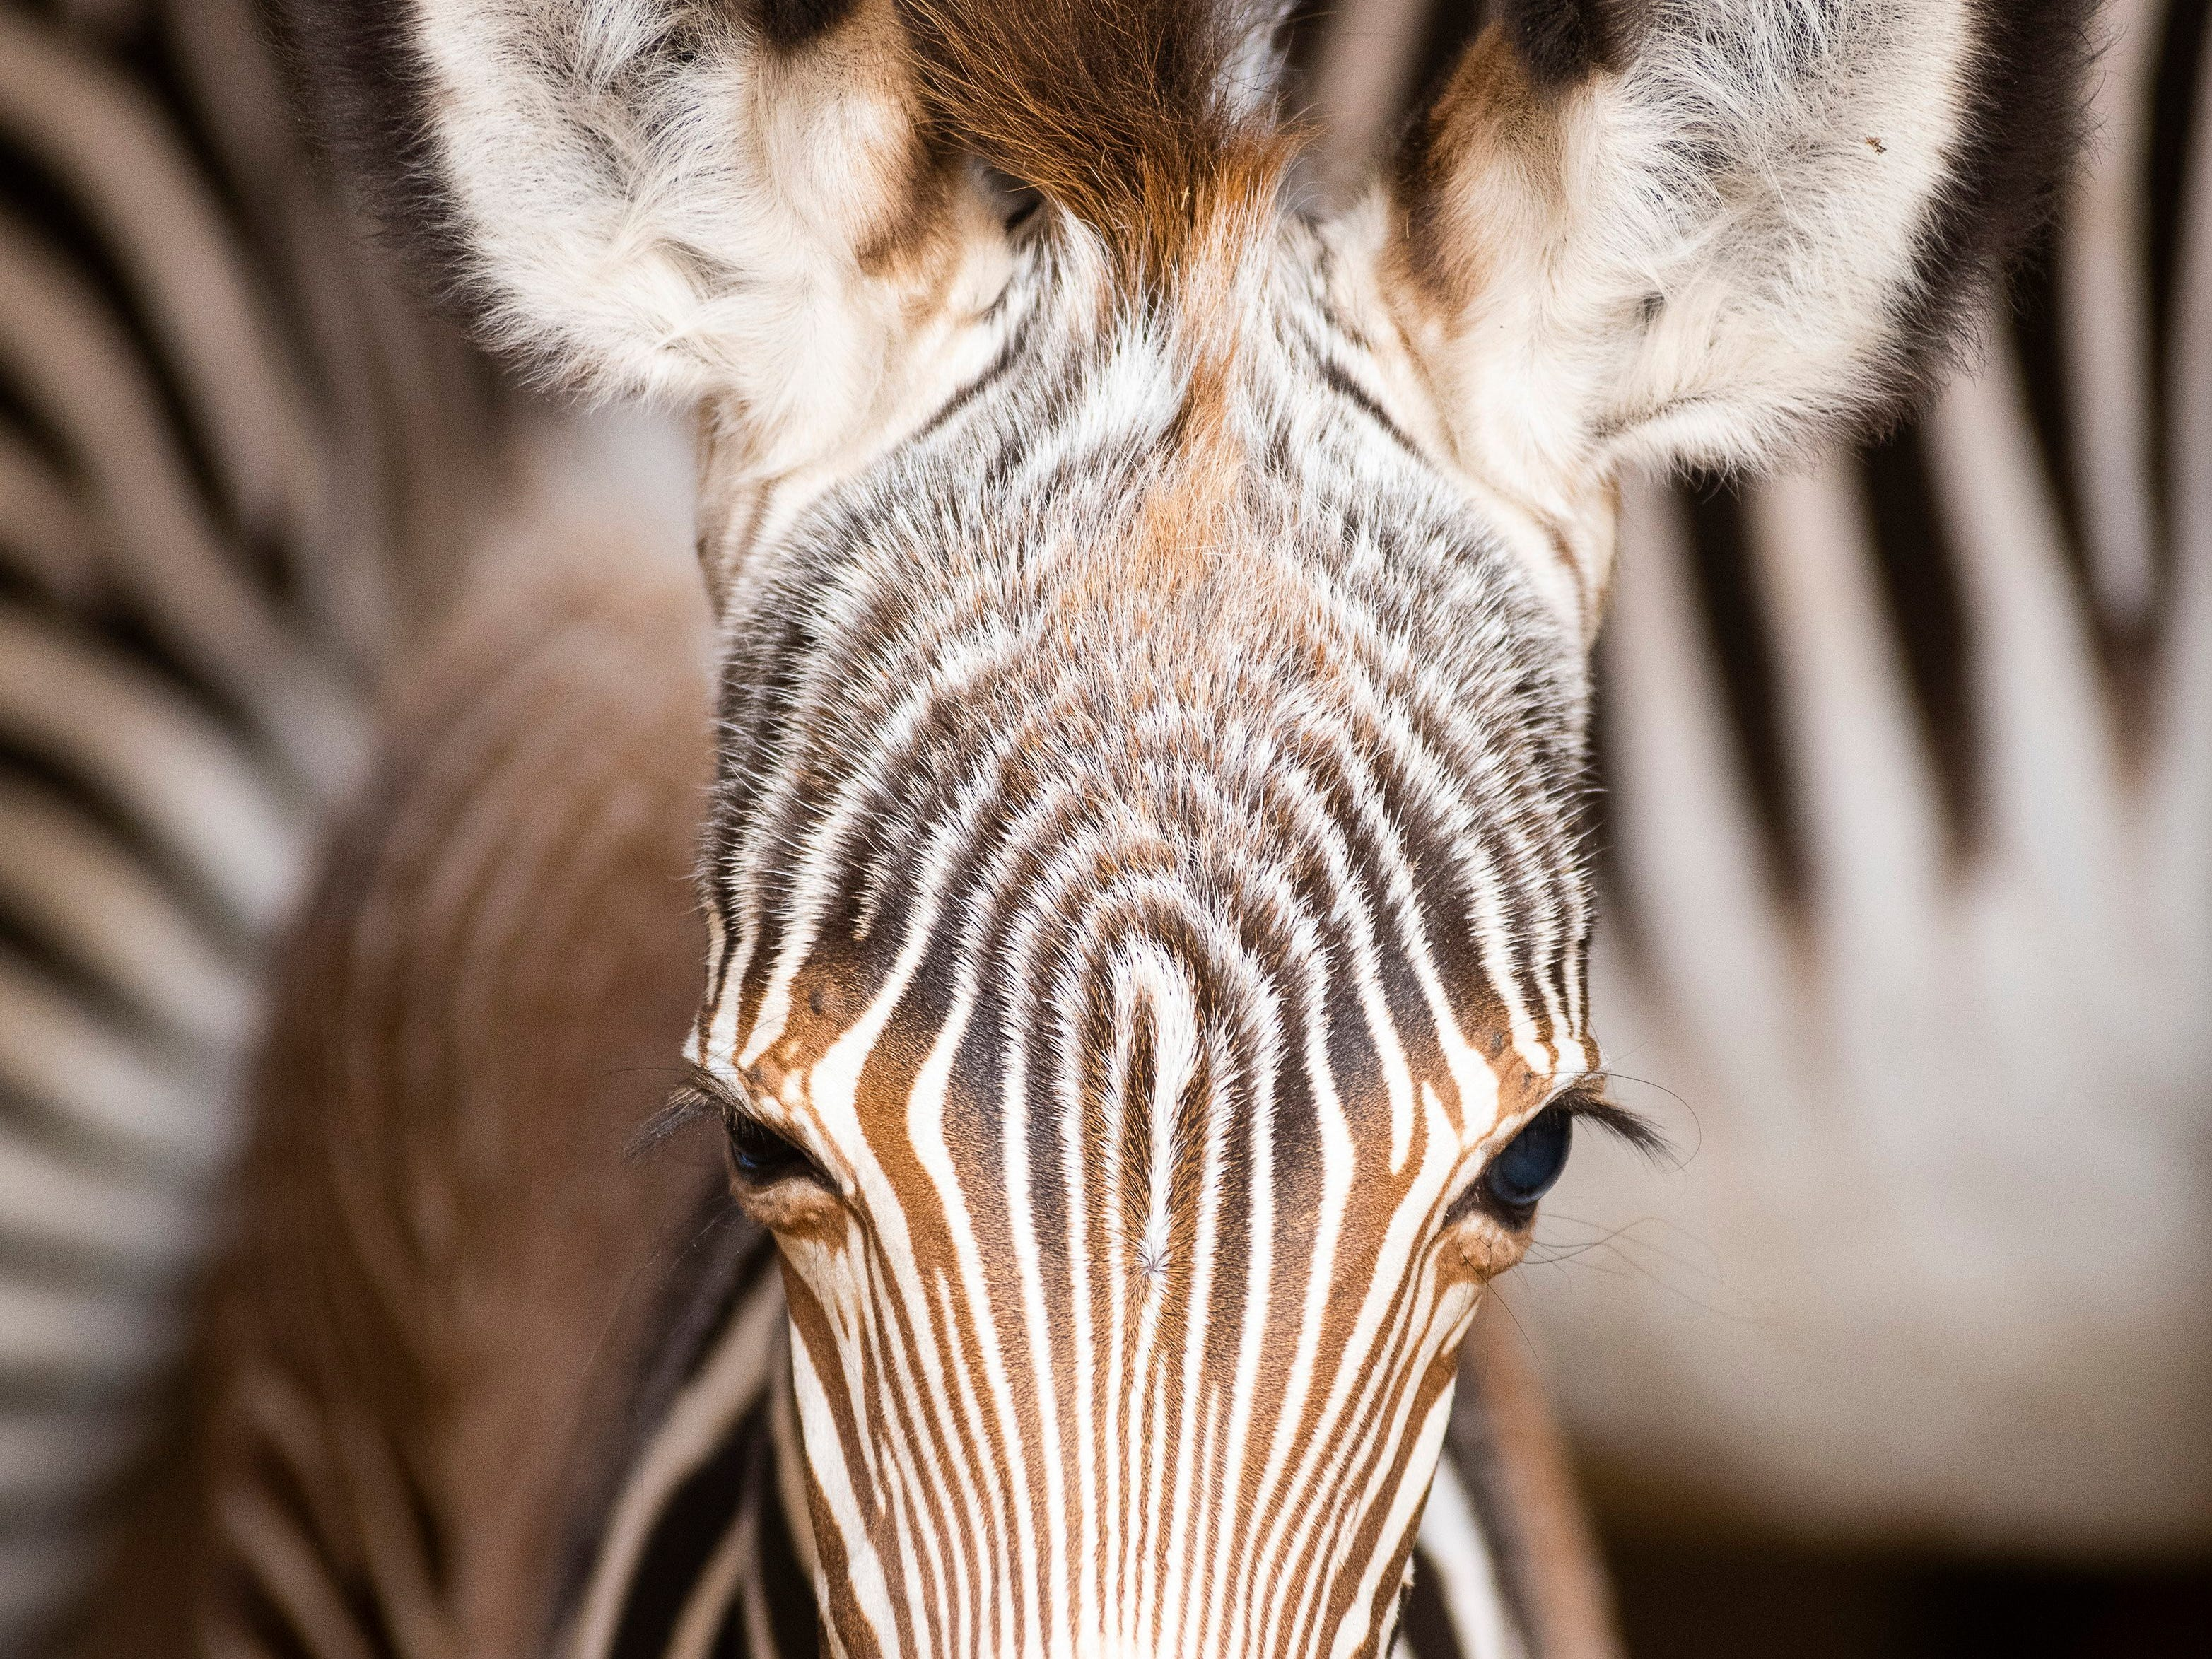 A 3-day old Grevy's zebra stays in its enclosure in the Nyiregyhaza Animal Park in Nyiregyhaza, Hungary, Thursday, Jan. 3, 2019. Grevy's or imperial zebra is the largest species of zebra and the largest wild equid.